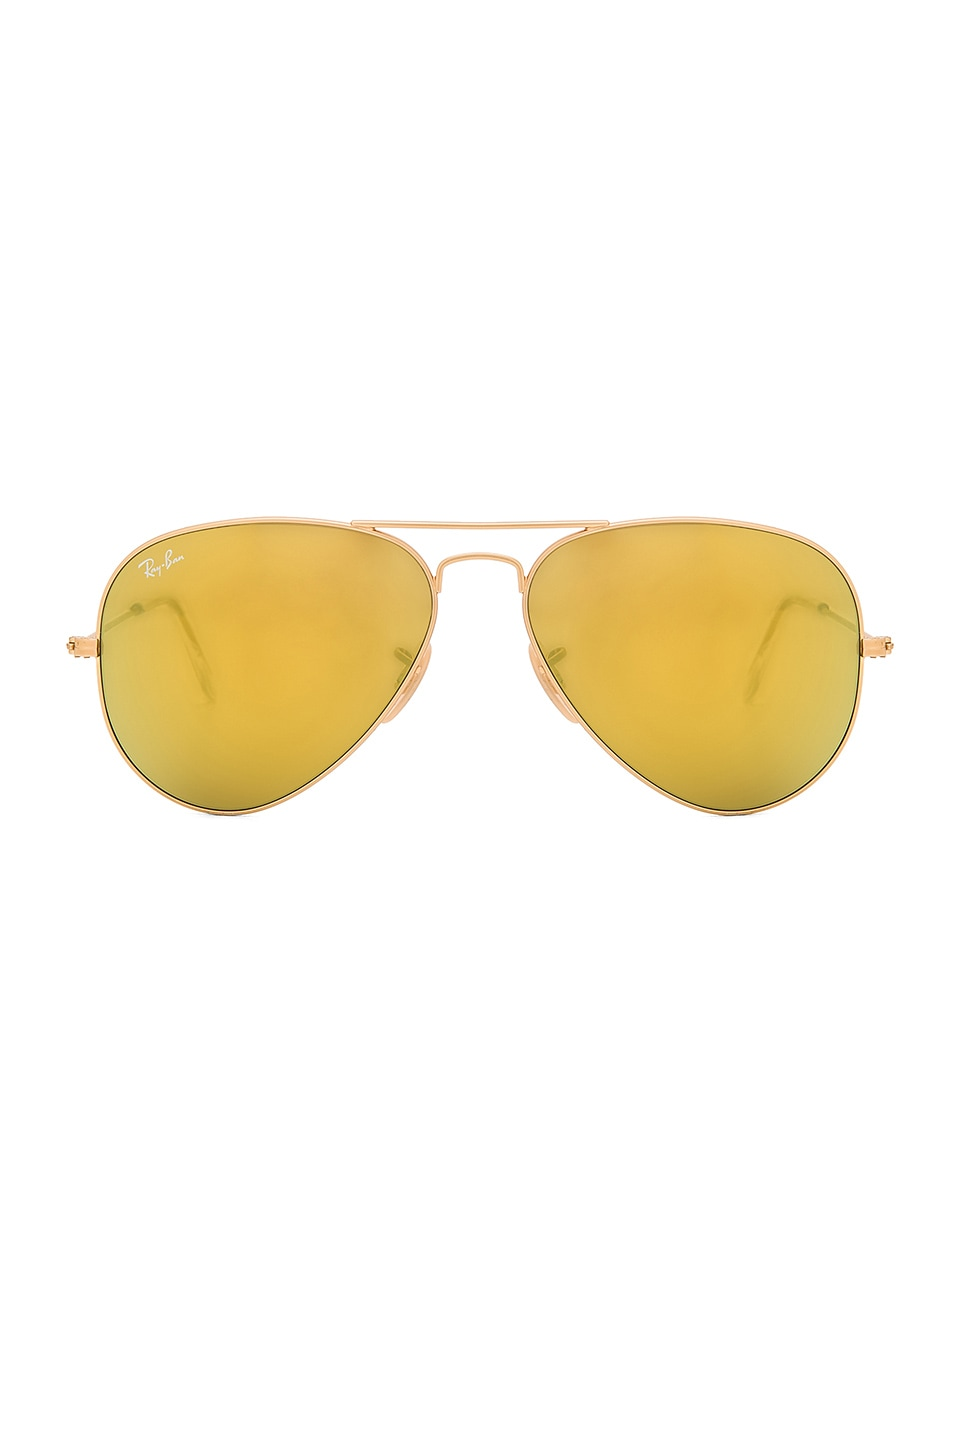 Ray-Ban Aviator in Matte Gold & Brown Mirror Gold